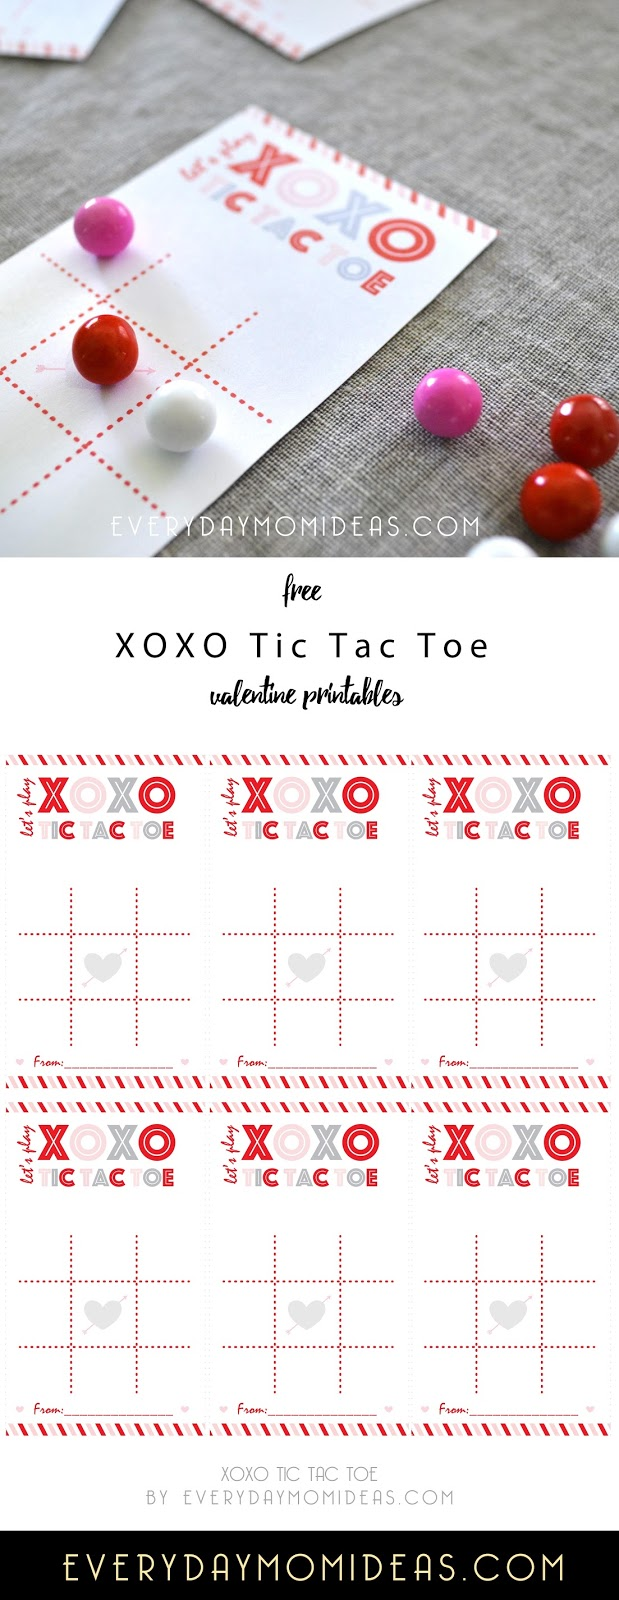 graphic about Tic Tac Toe Valentine Printable titled XOXO Tic Tac Toe (No cost Valentine Printable) - Day by day Mother Plans